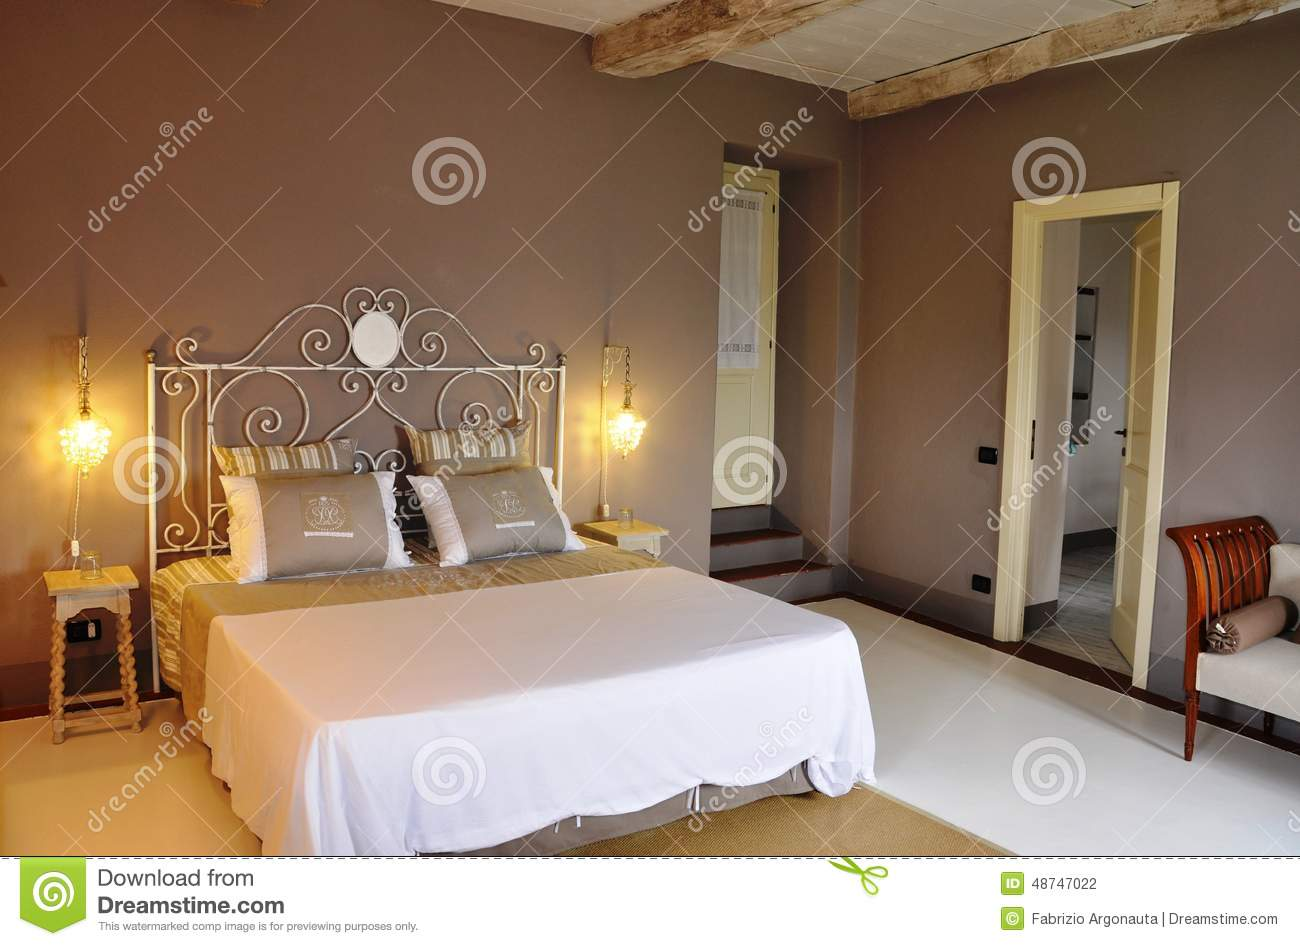 chambre coucher de style campagnard photo stock image 48747022. Black Bedroom Furniture Sets. Home Design Ideas